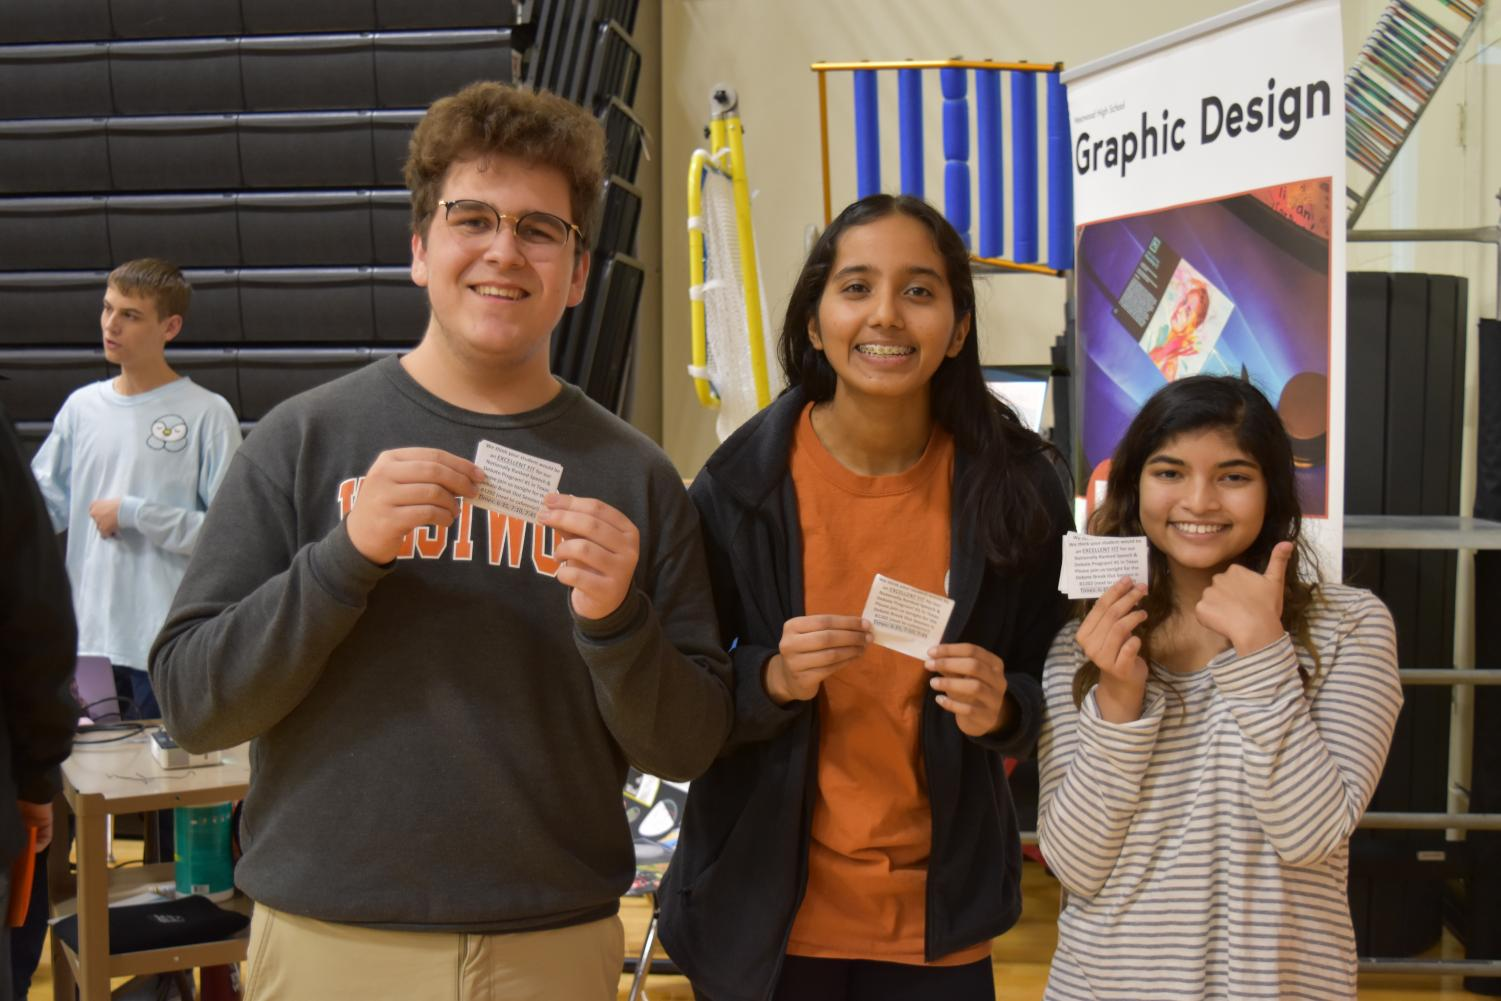 Bryce+Keeler+%2721%2C+Vaishnavi+Marreddy+%2722%2C+and+Shawkin+Kabir+%2721+take+a+photo+together.+During+the+event%2C+Keeler%2C+Marreddy%2C+and+Kabir+handed+out+flyers+informing+parents+and+students+of+the+debate+breakout+session.